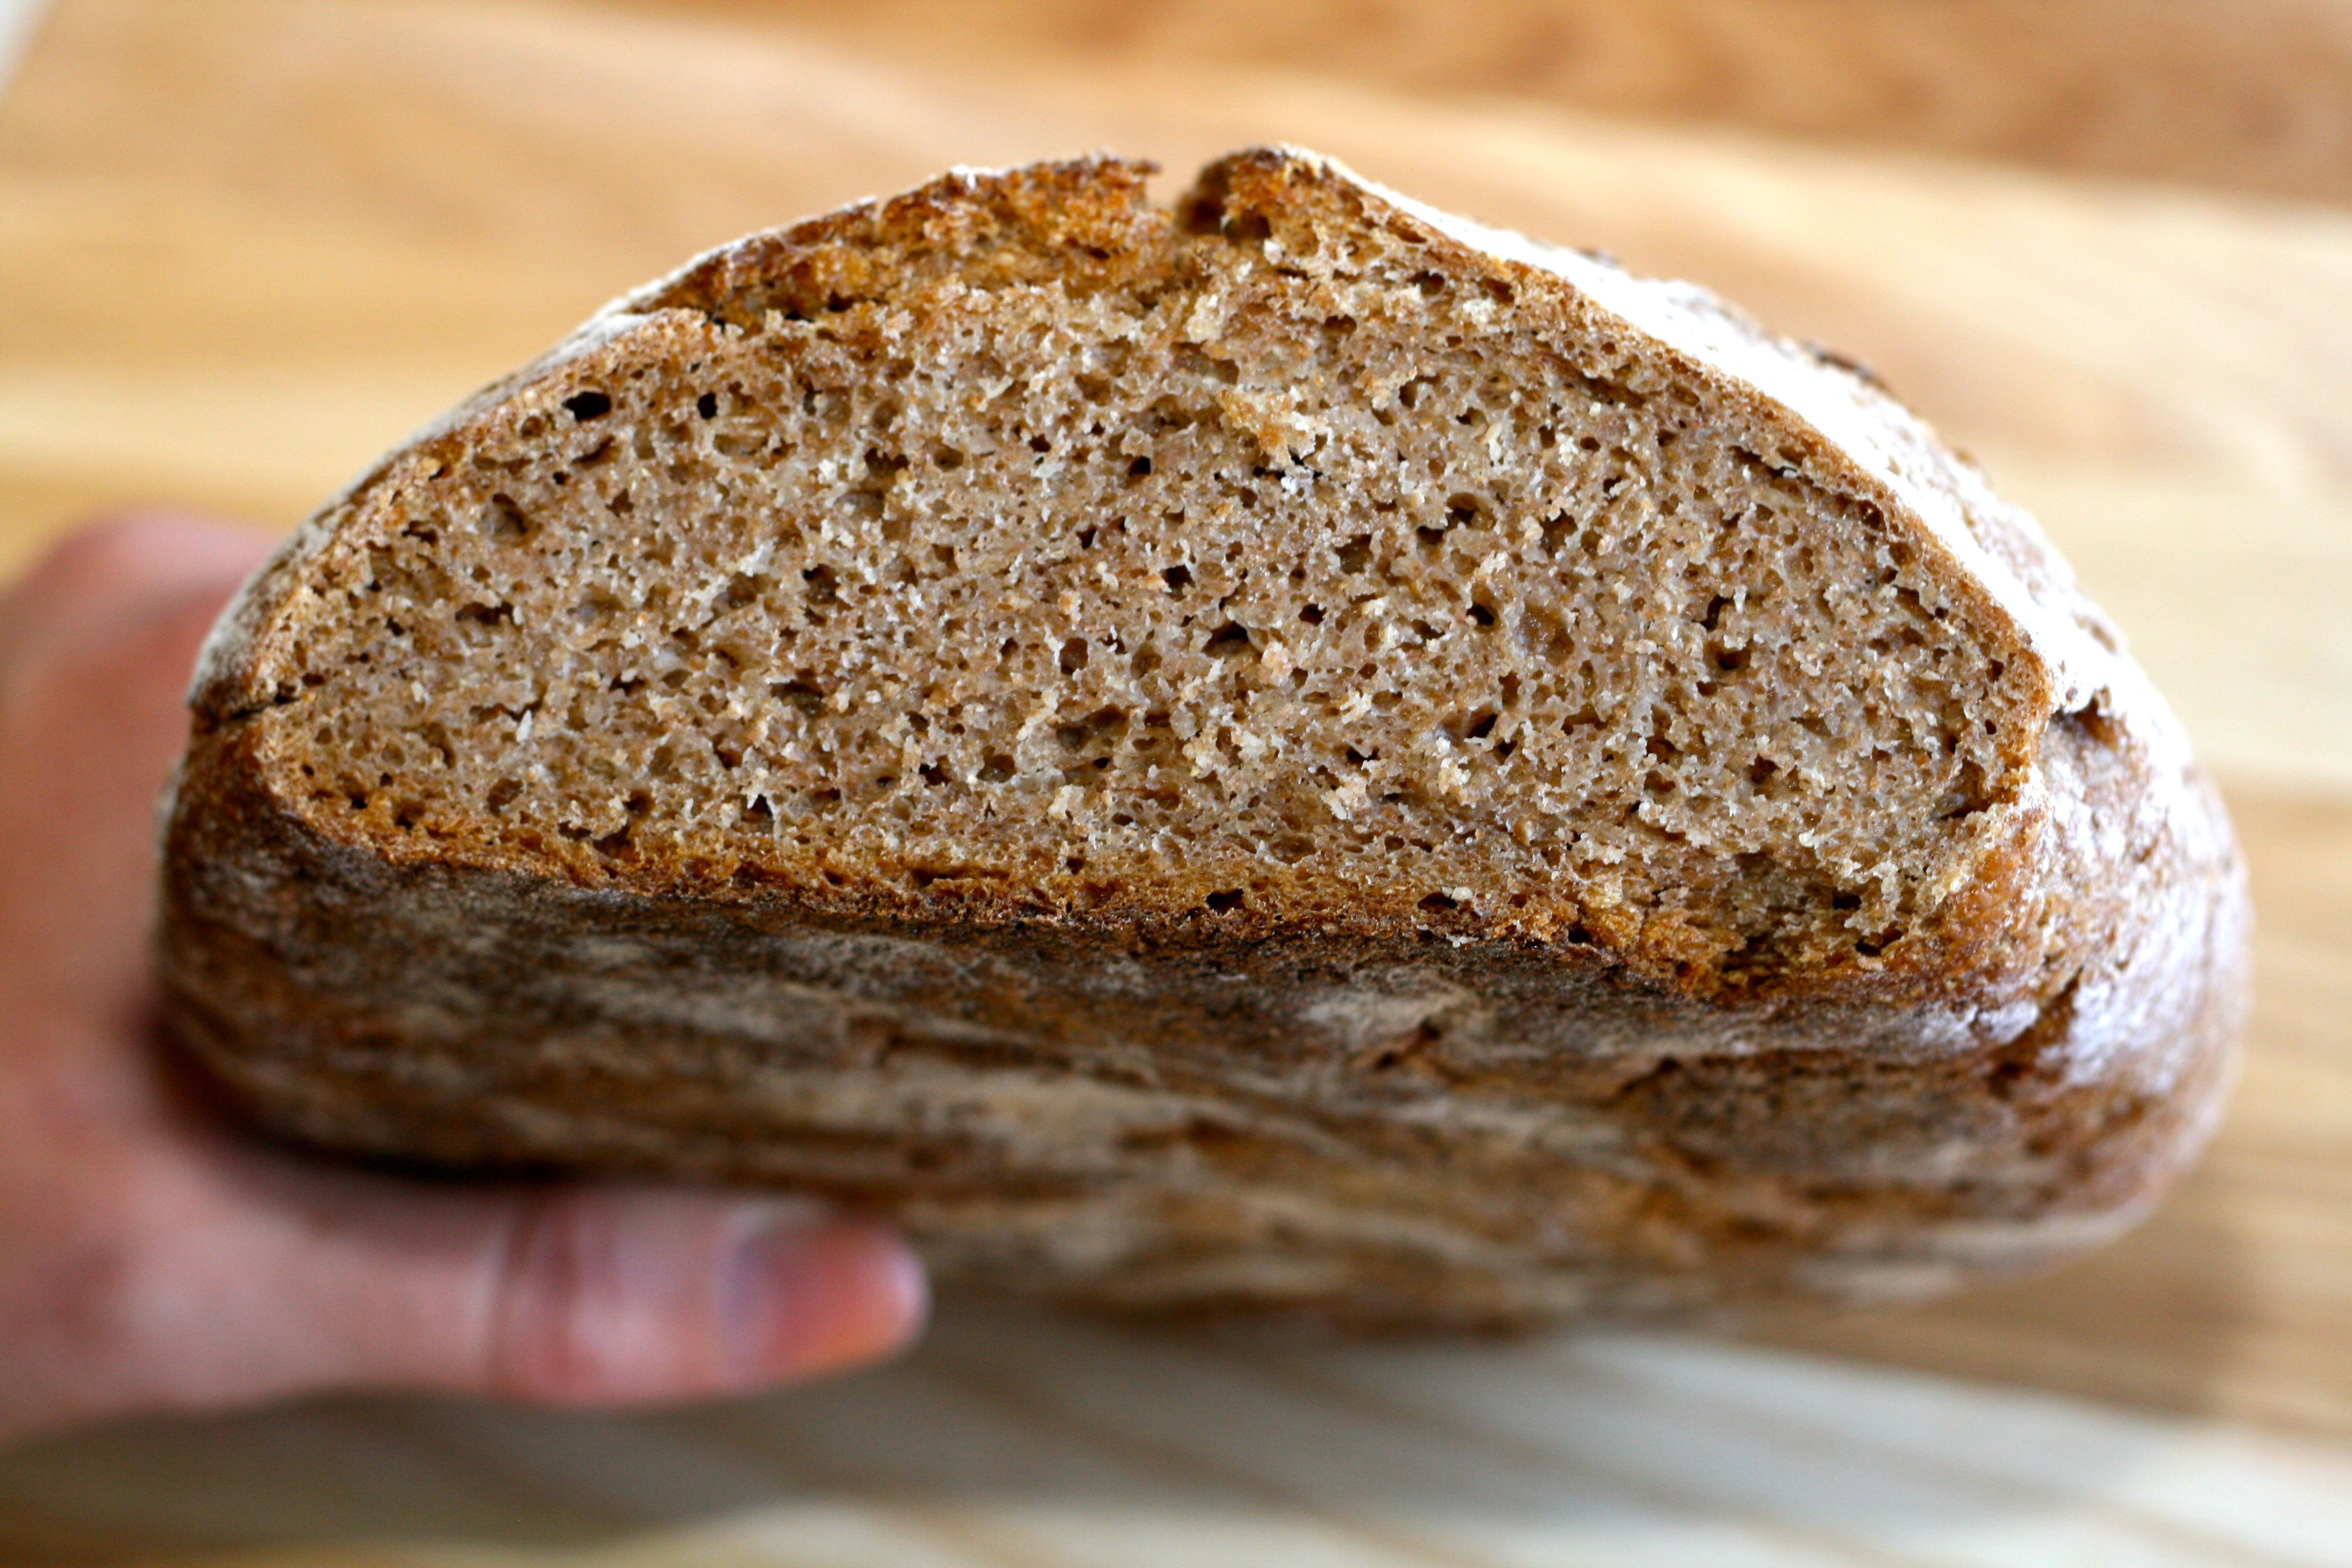 Are Grains Bad for You? The Good, The Bad, and The Ugly